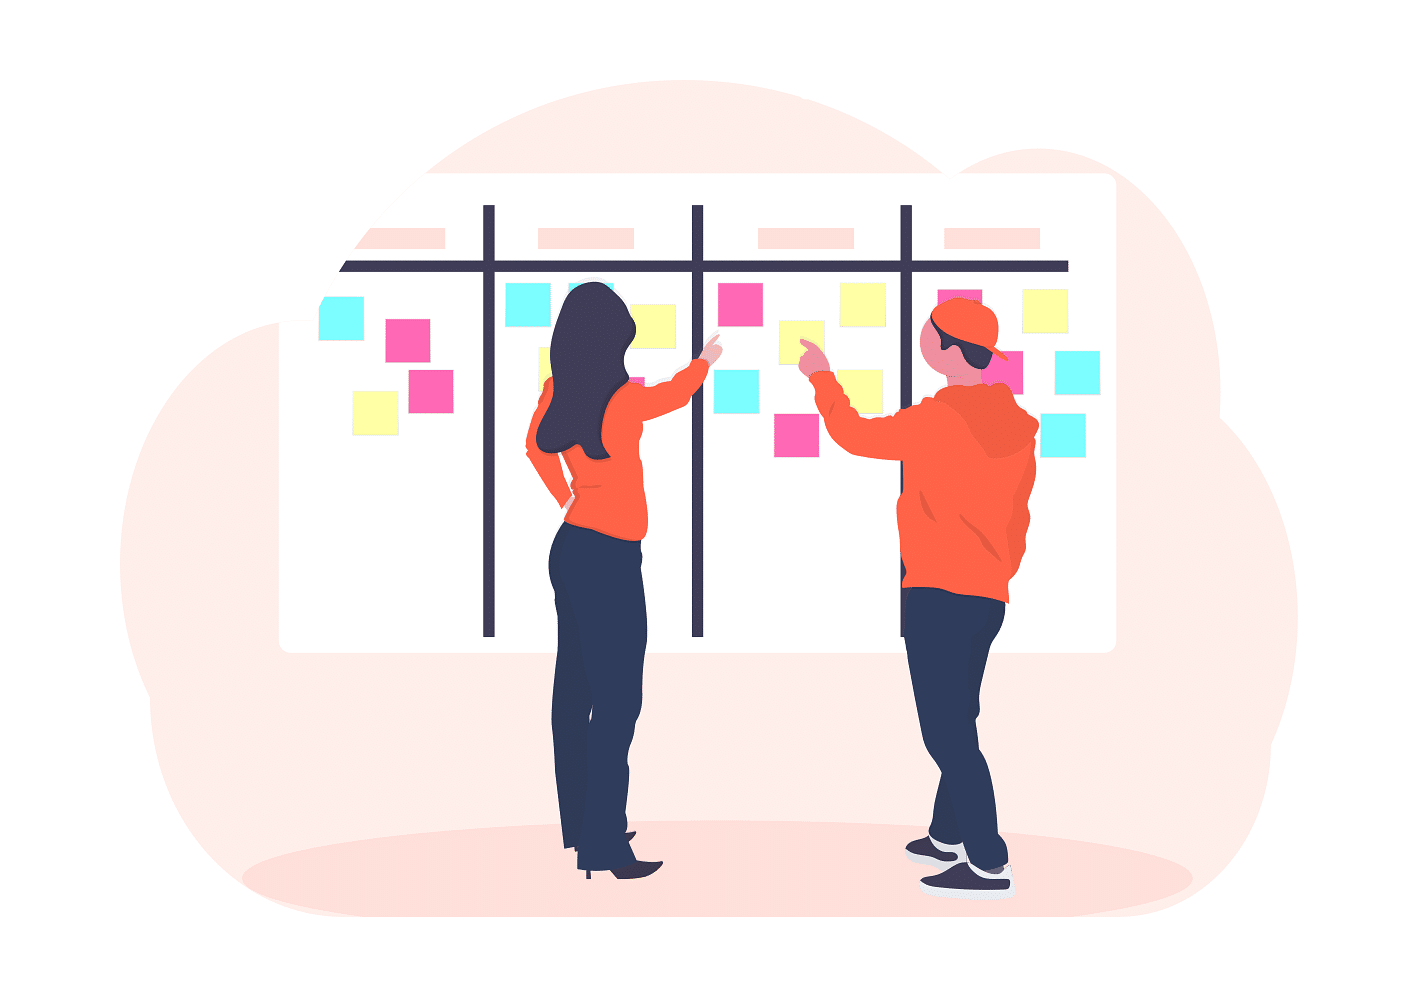 Preparation and planning - scrum board